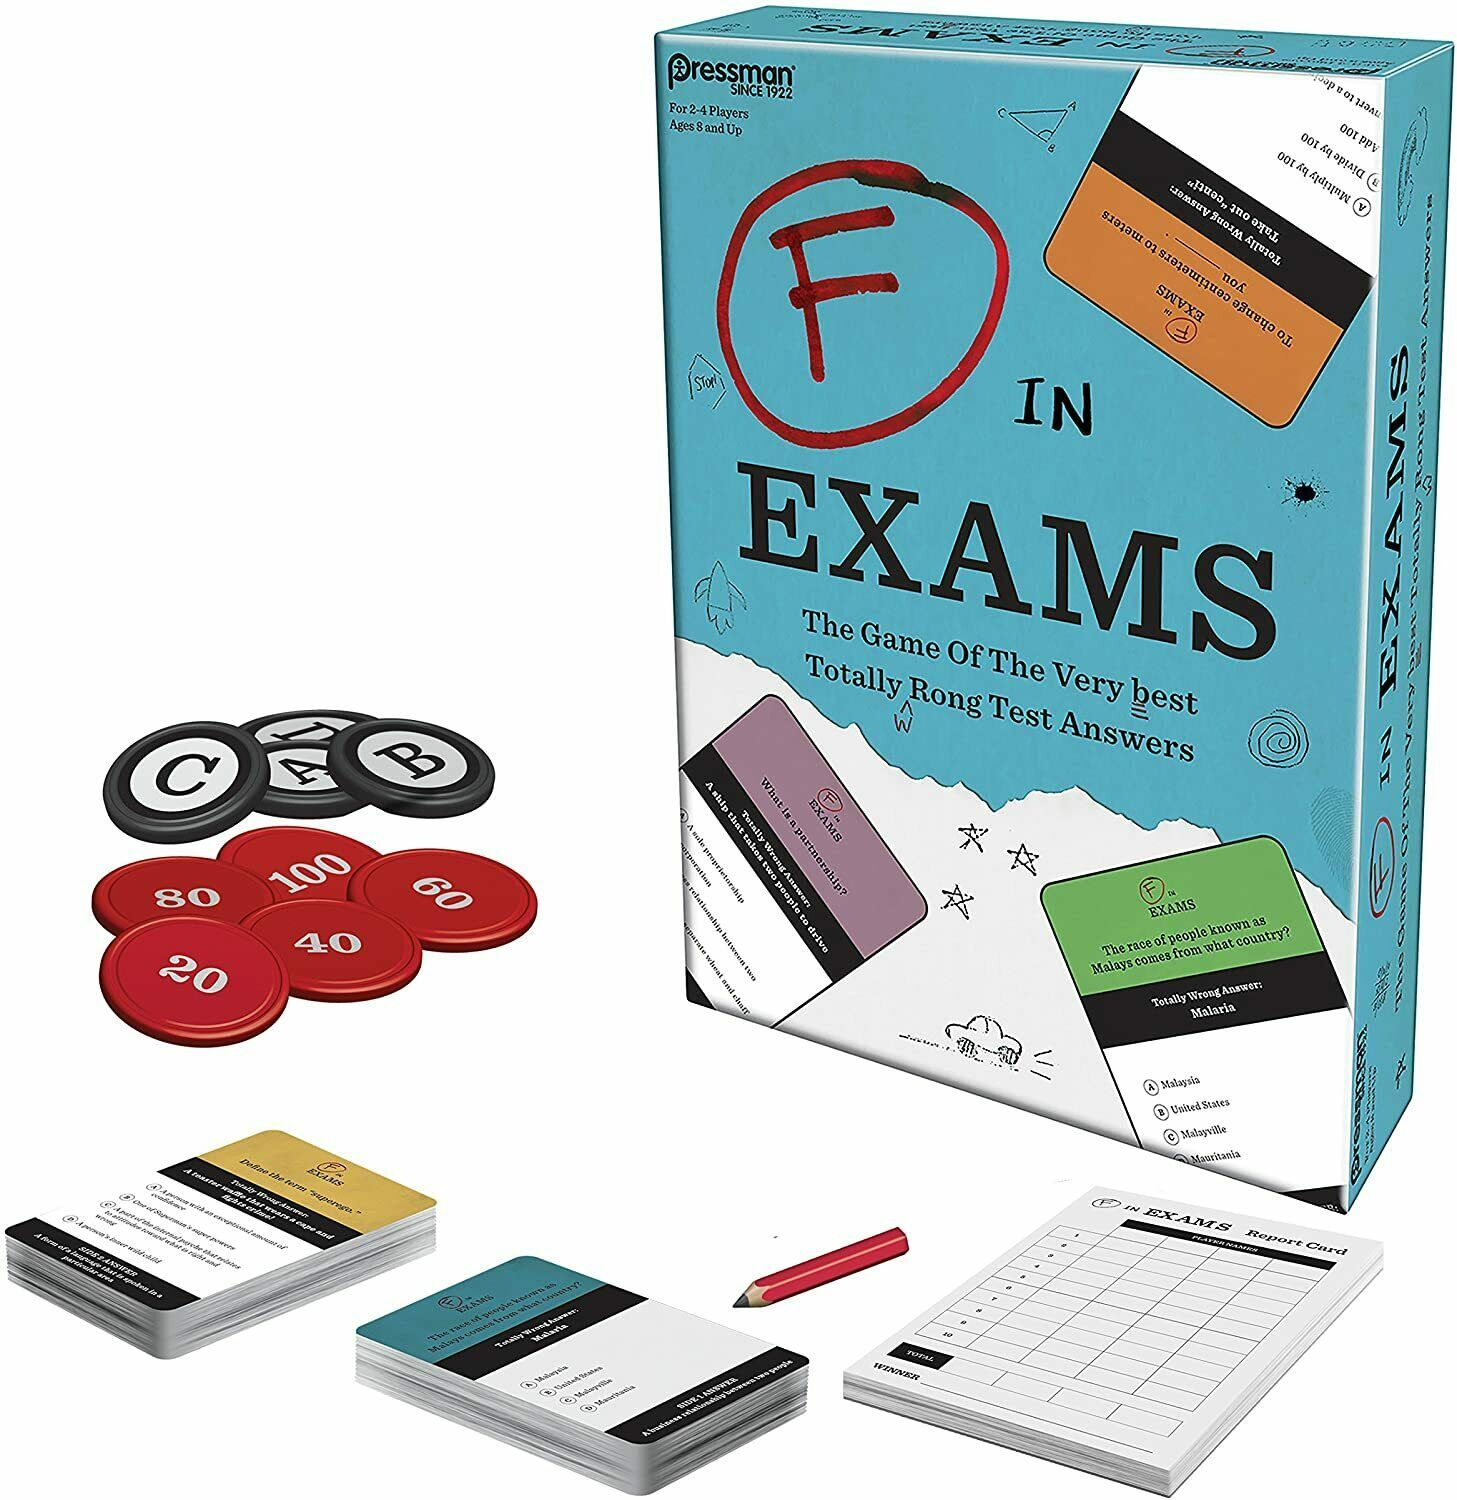 F in Exams Game - $49.50